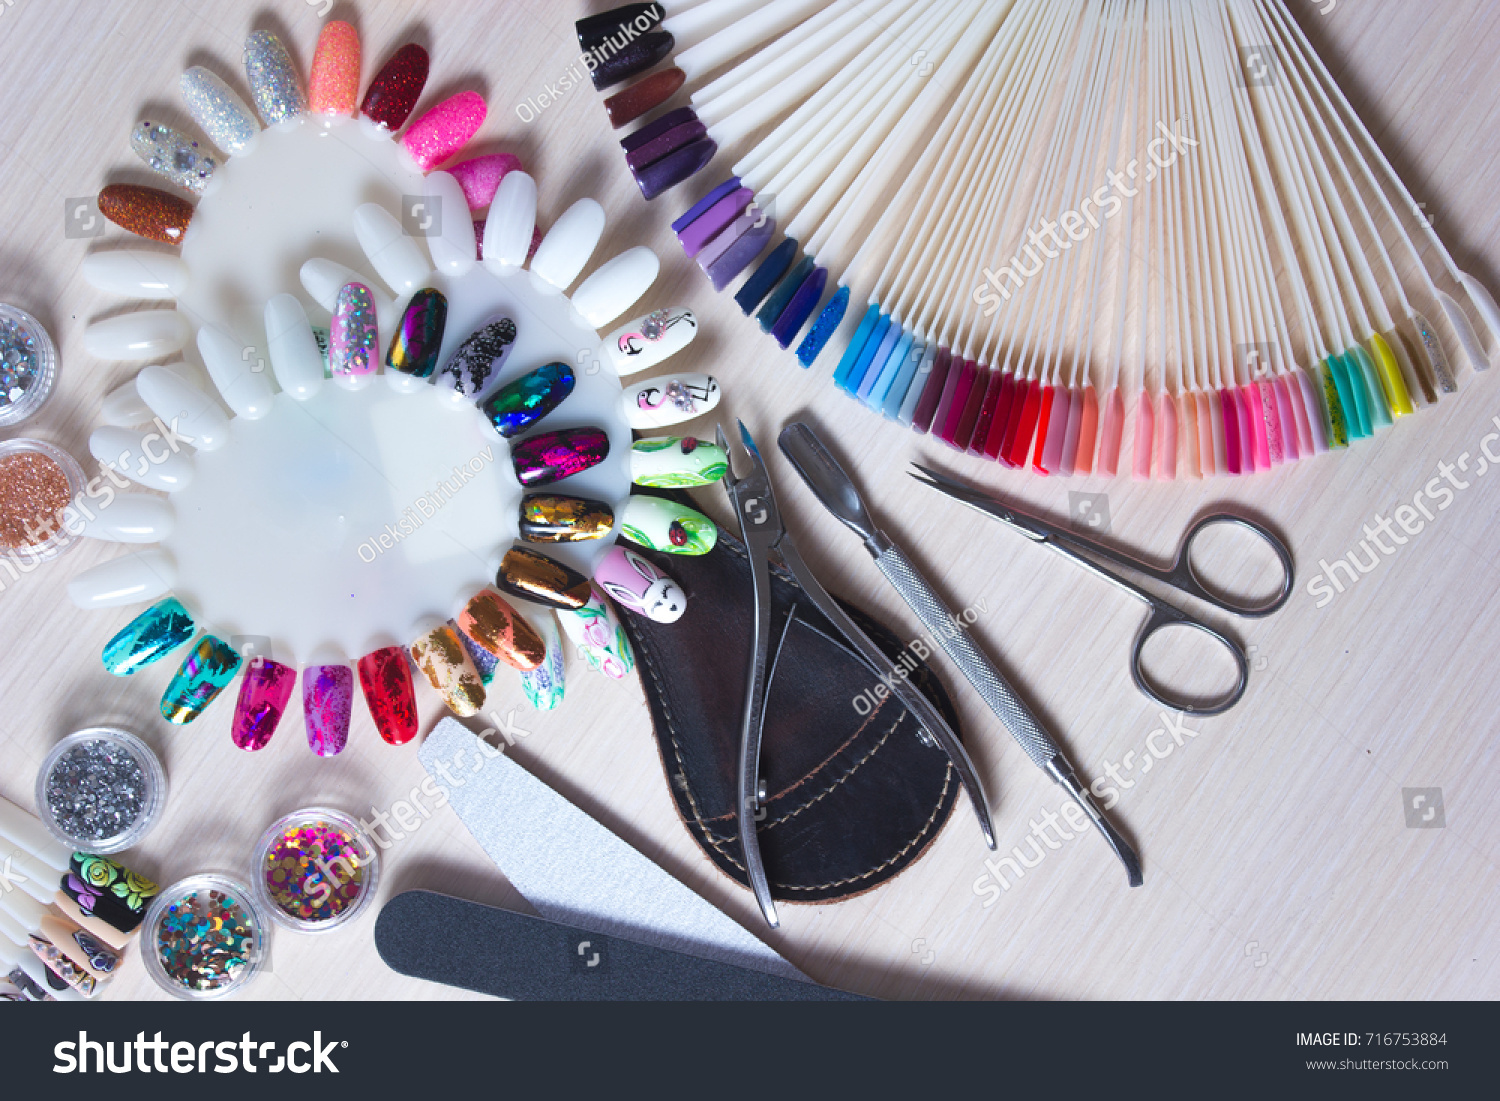 Table Full Manicure Utensils Manicure Tools Stock Photo (Royalty ...